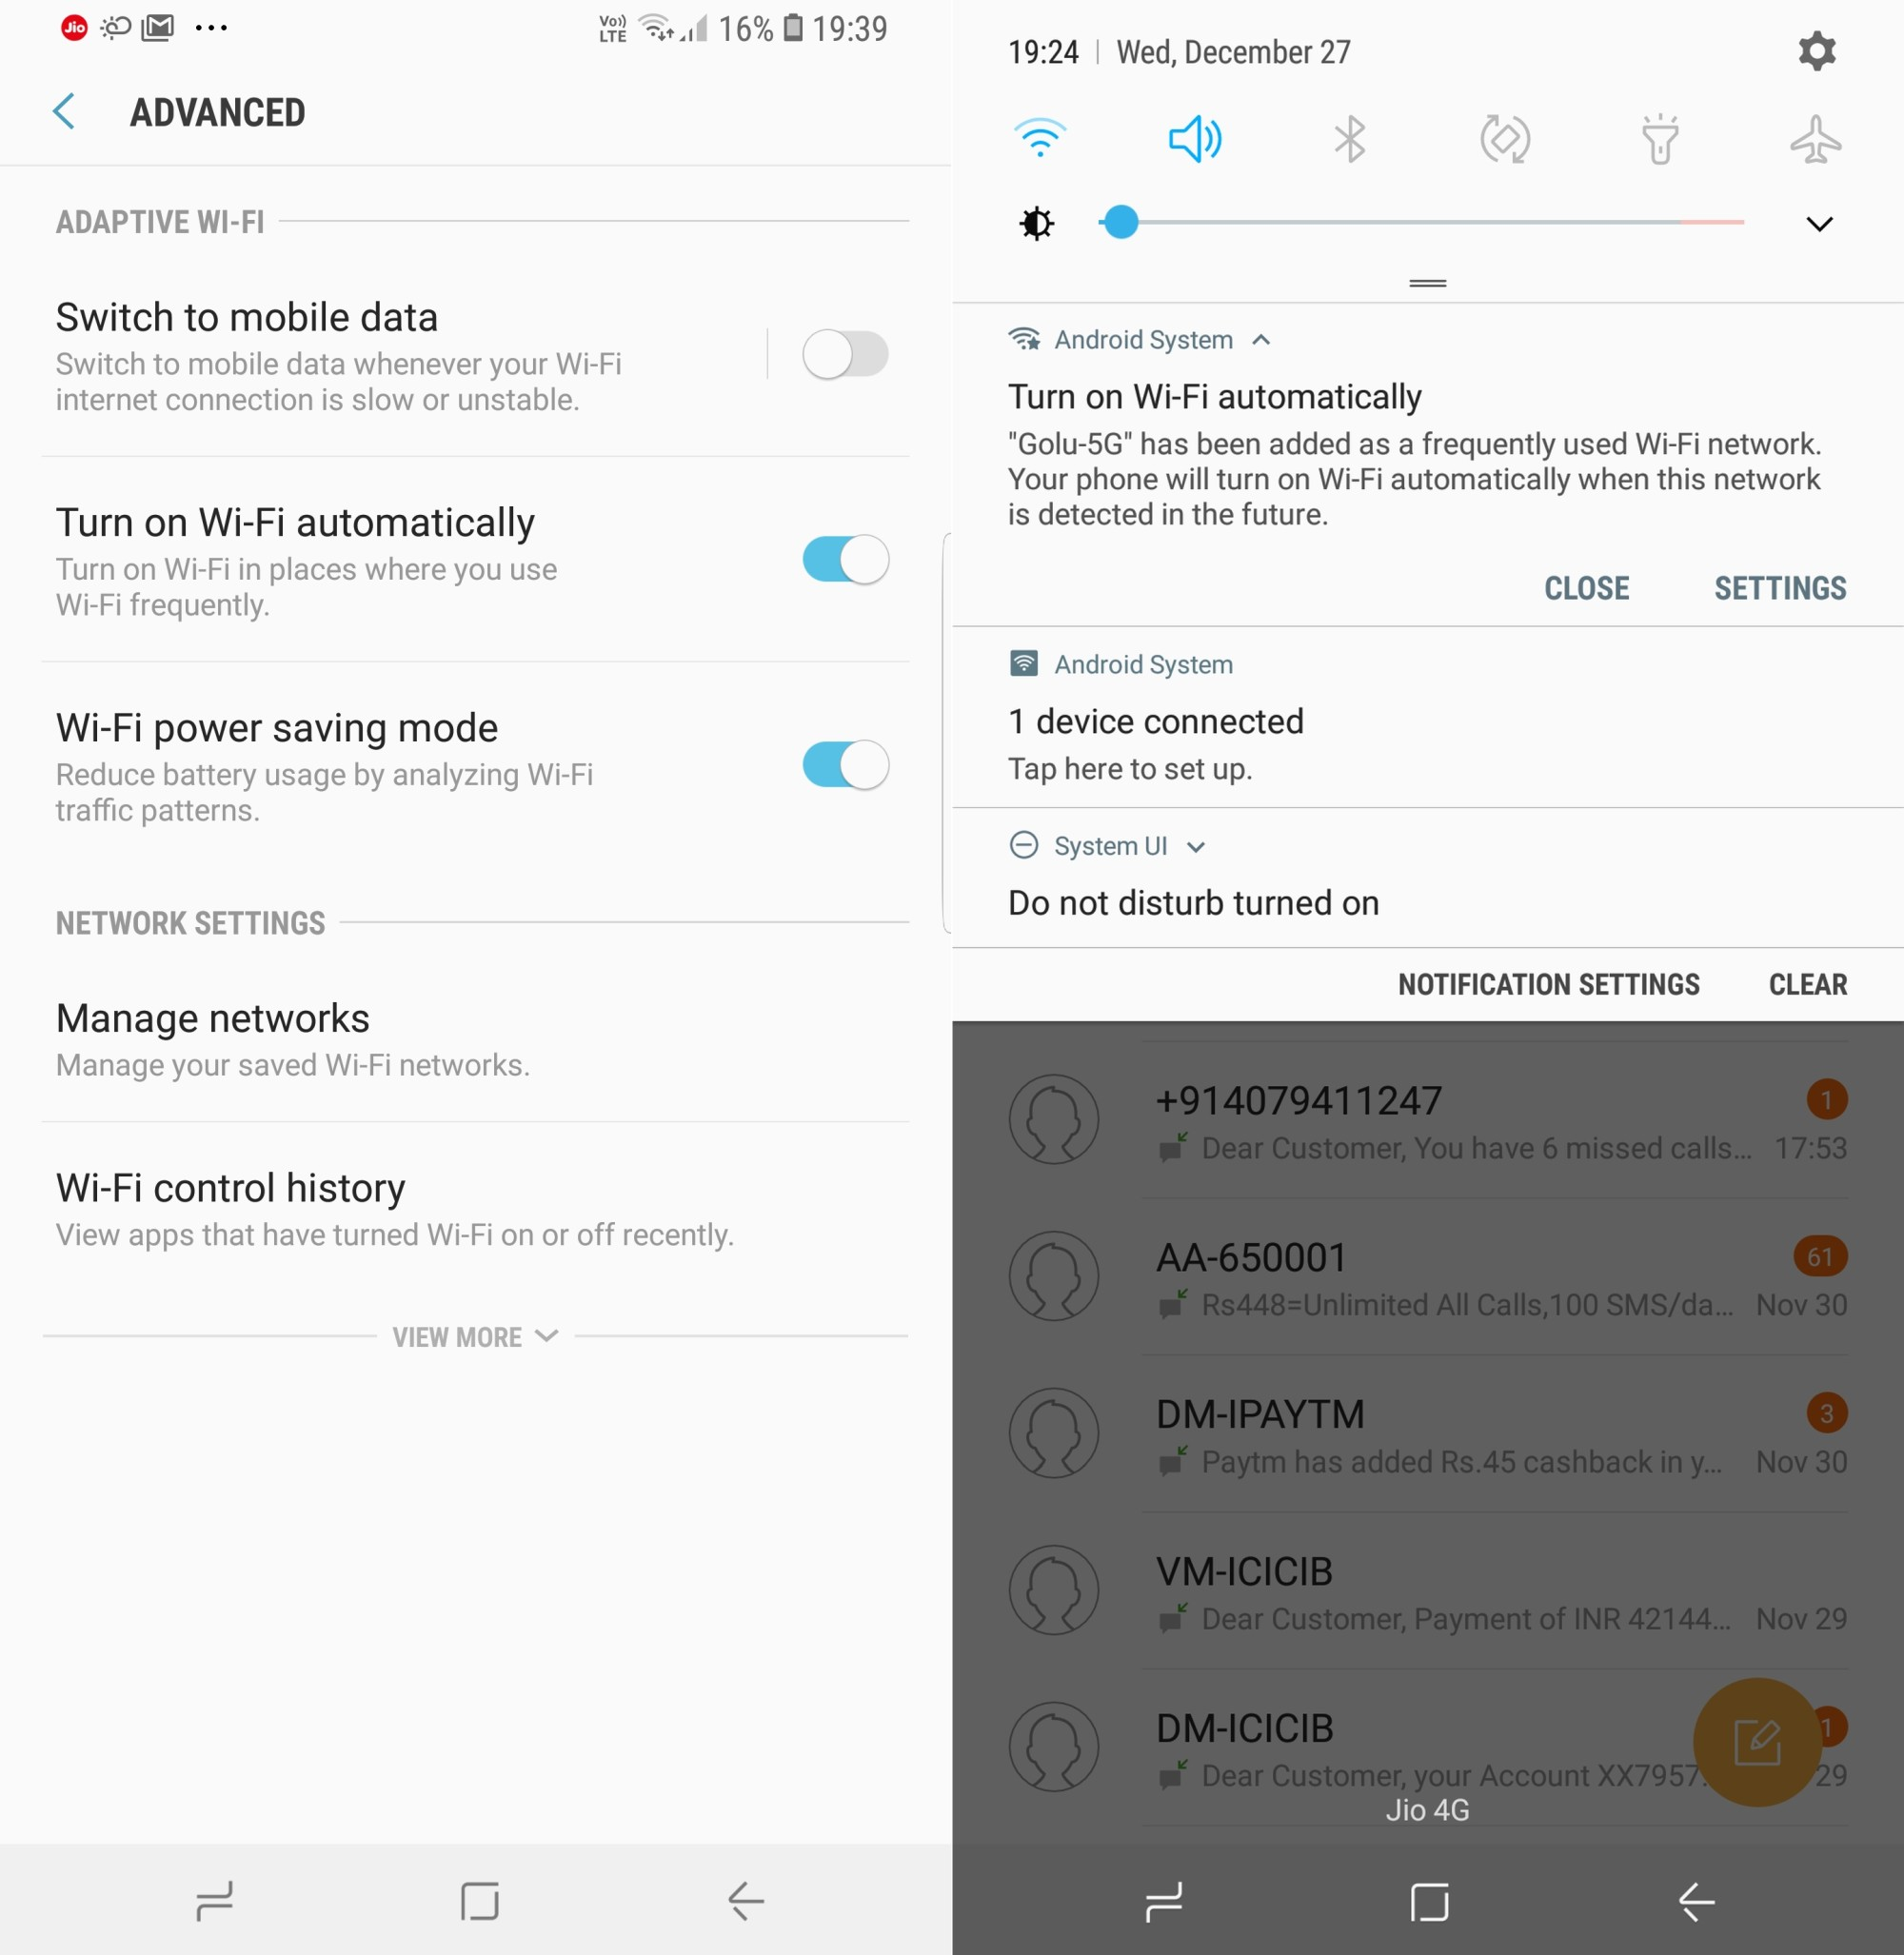 What's New With Android 8.0 Oreo Part 15: Automatically turn Wi-Fi on near known networks